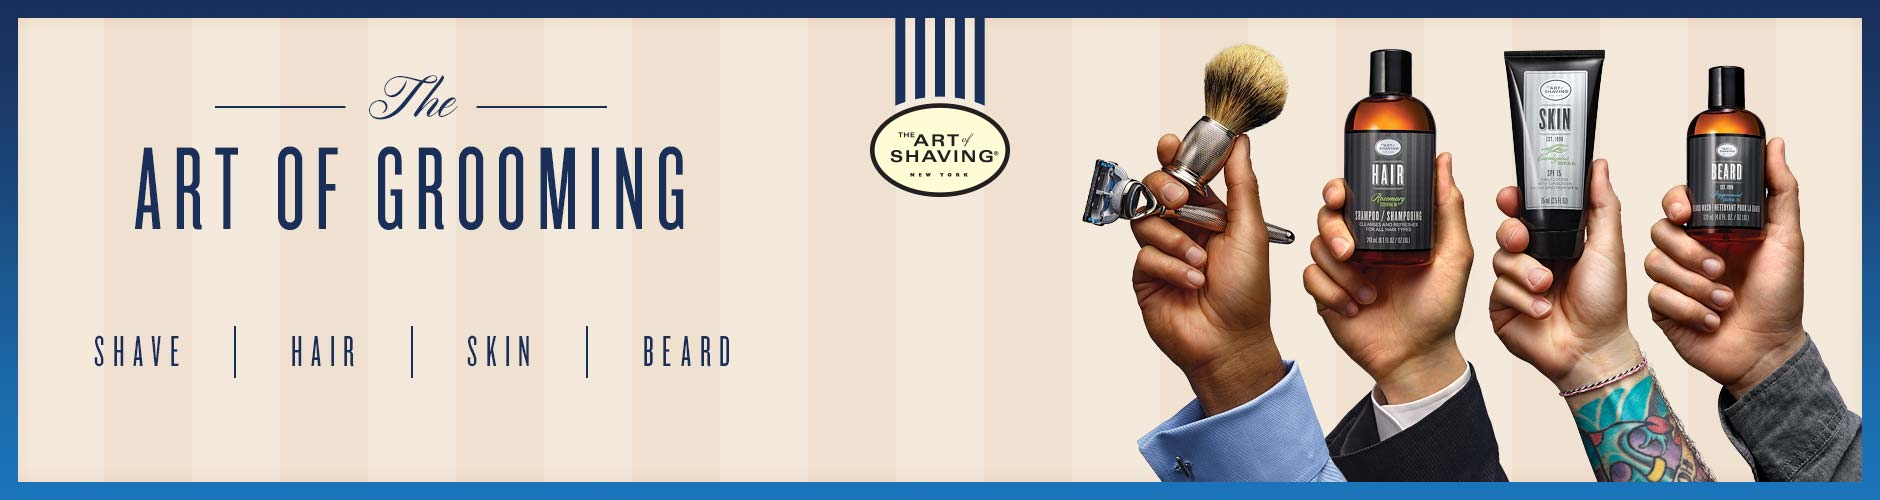 The Art of Grooming - Shave, Hair, SKin, Beard